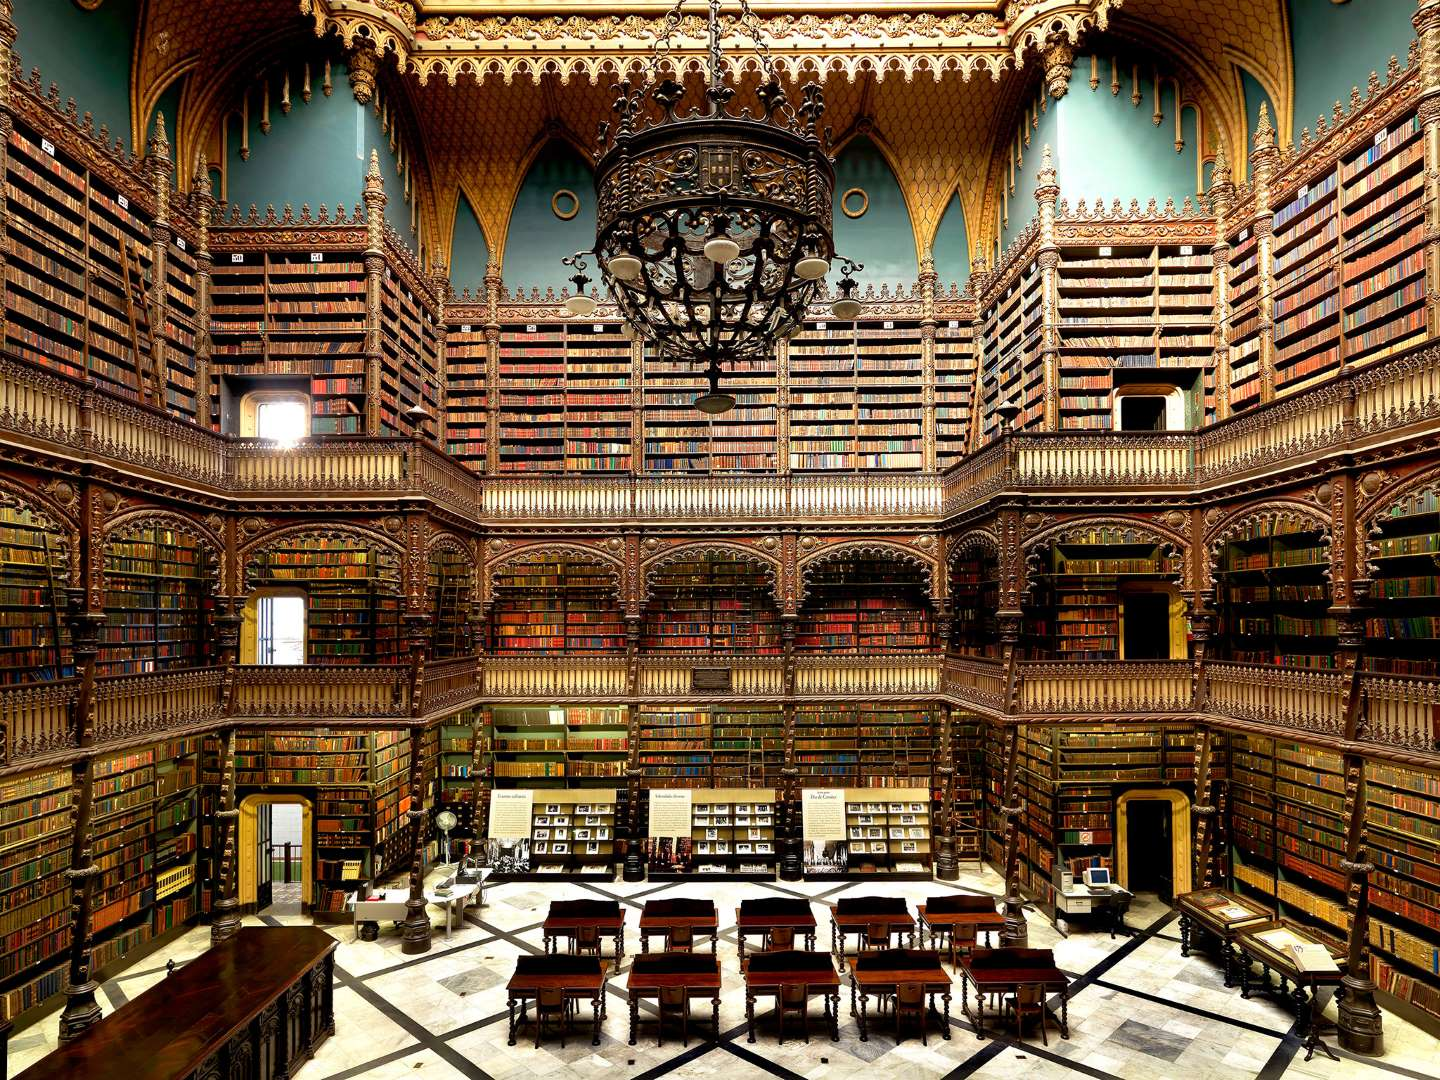 Royal Portuguese Reading Room. Photo Source: MSN.com.